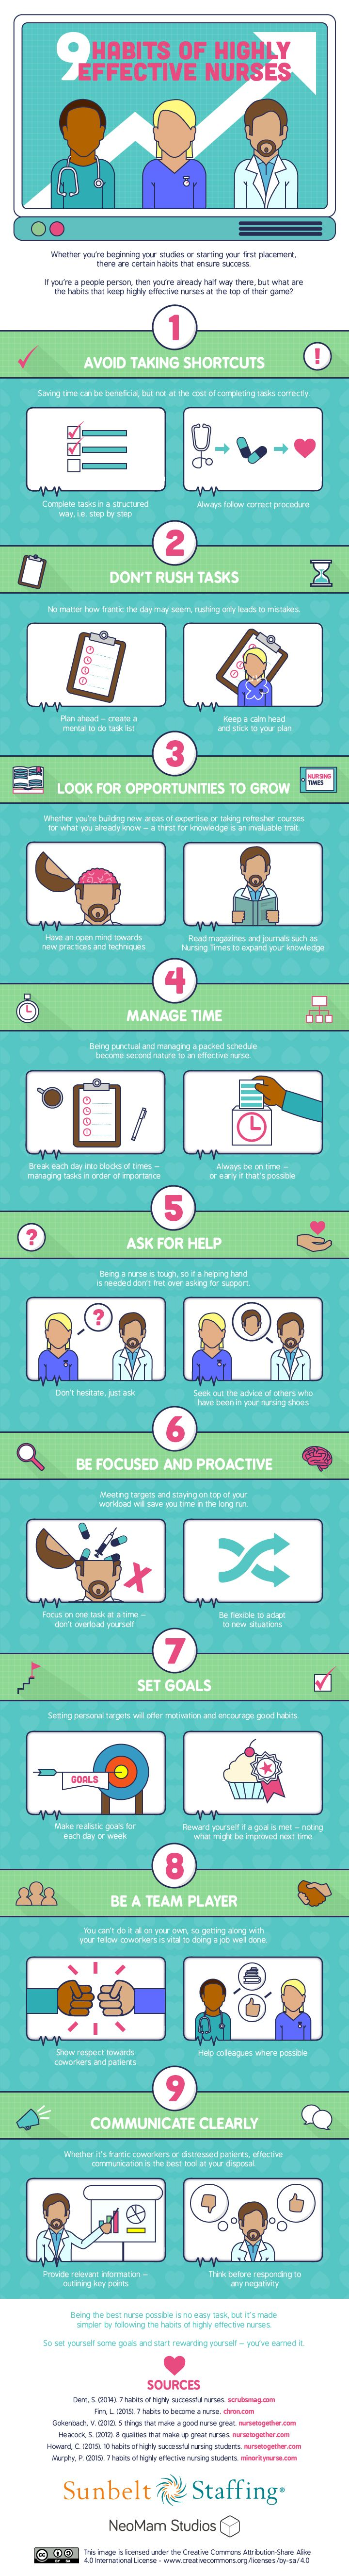 9 Habits of Highly Effective Nurses: An Infographic